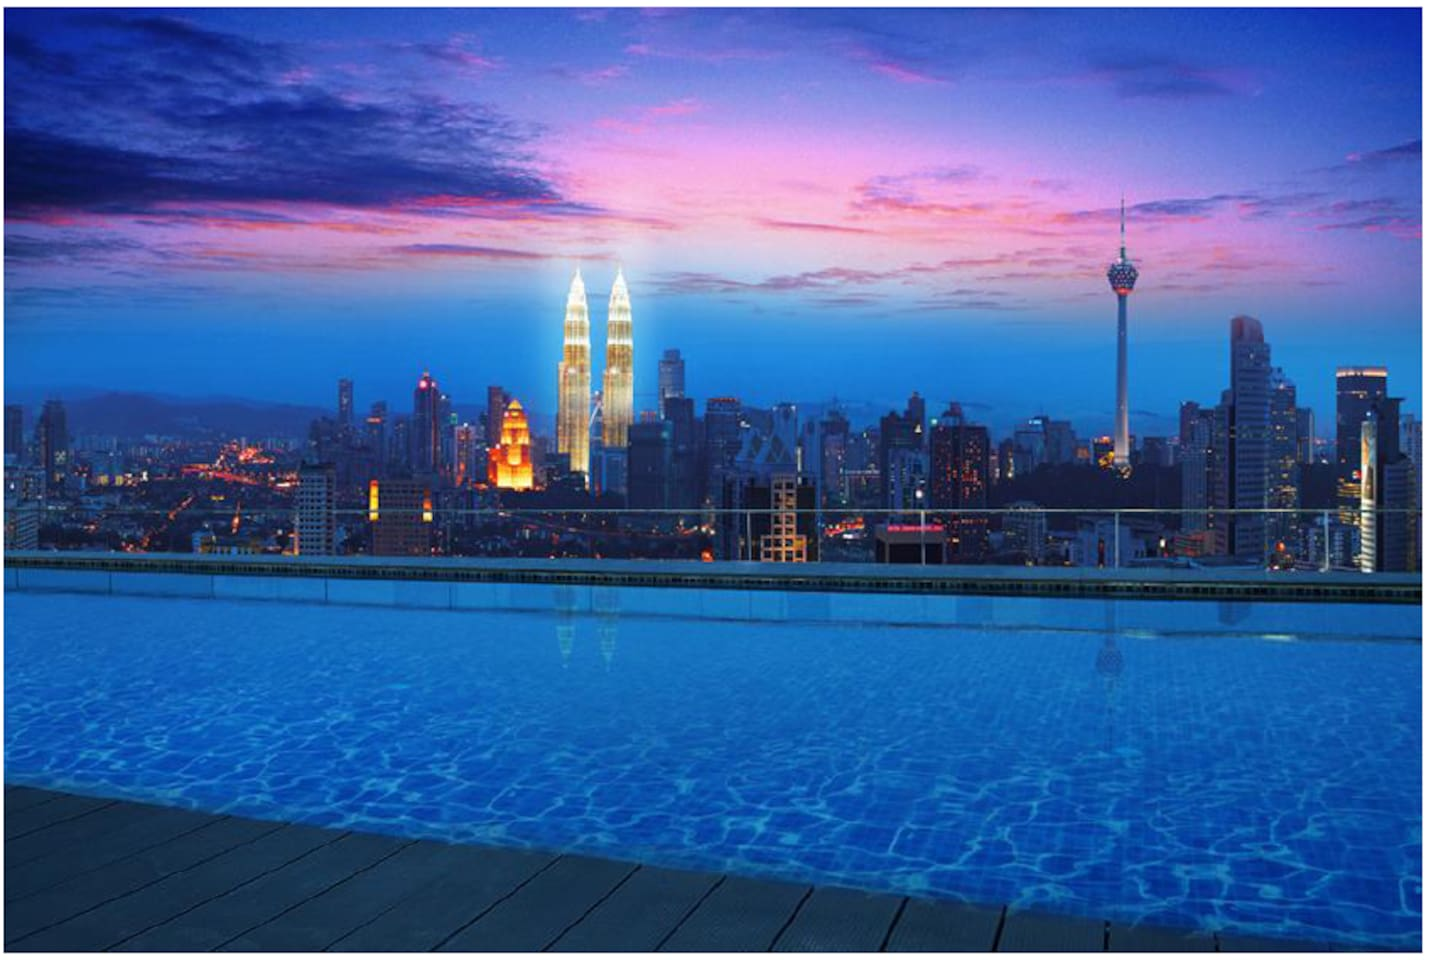 Condo has two pool, this one is most famous one, named Infinity pool which is located at rooftop, with KLCC view.